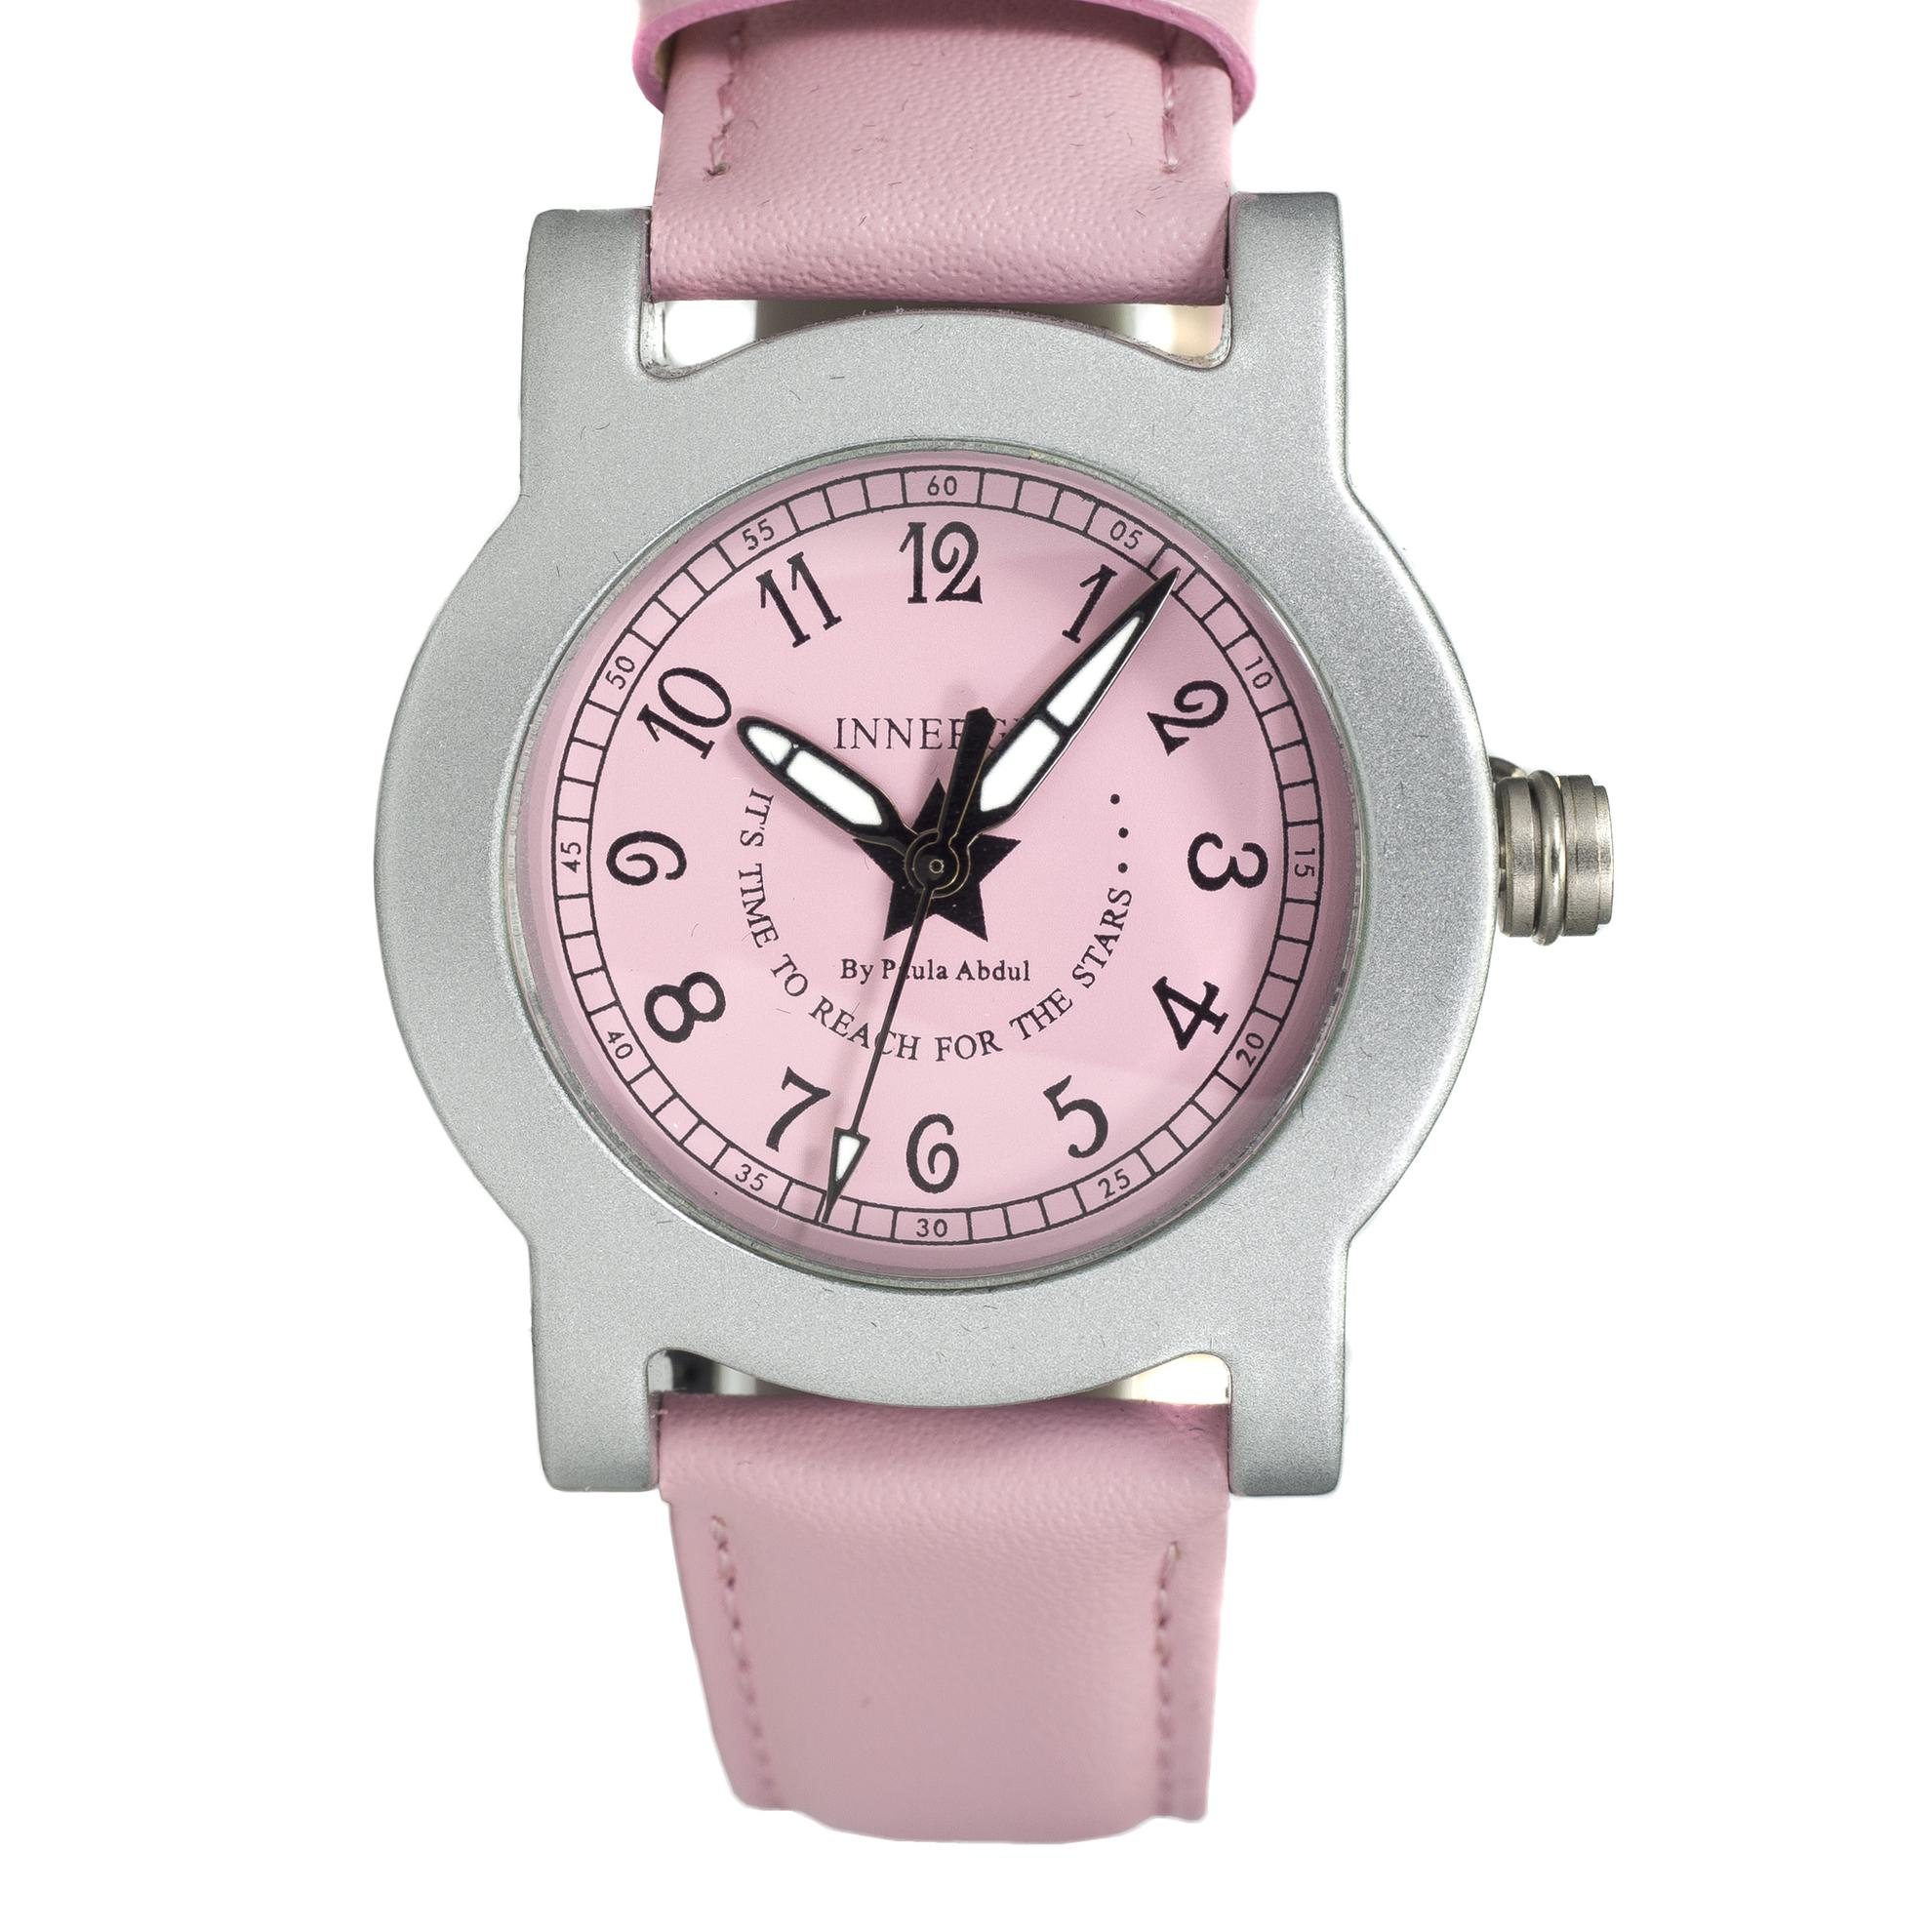 Innergy Swiss Made Timepiece Pink Leather Strap